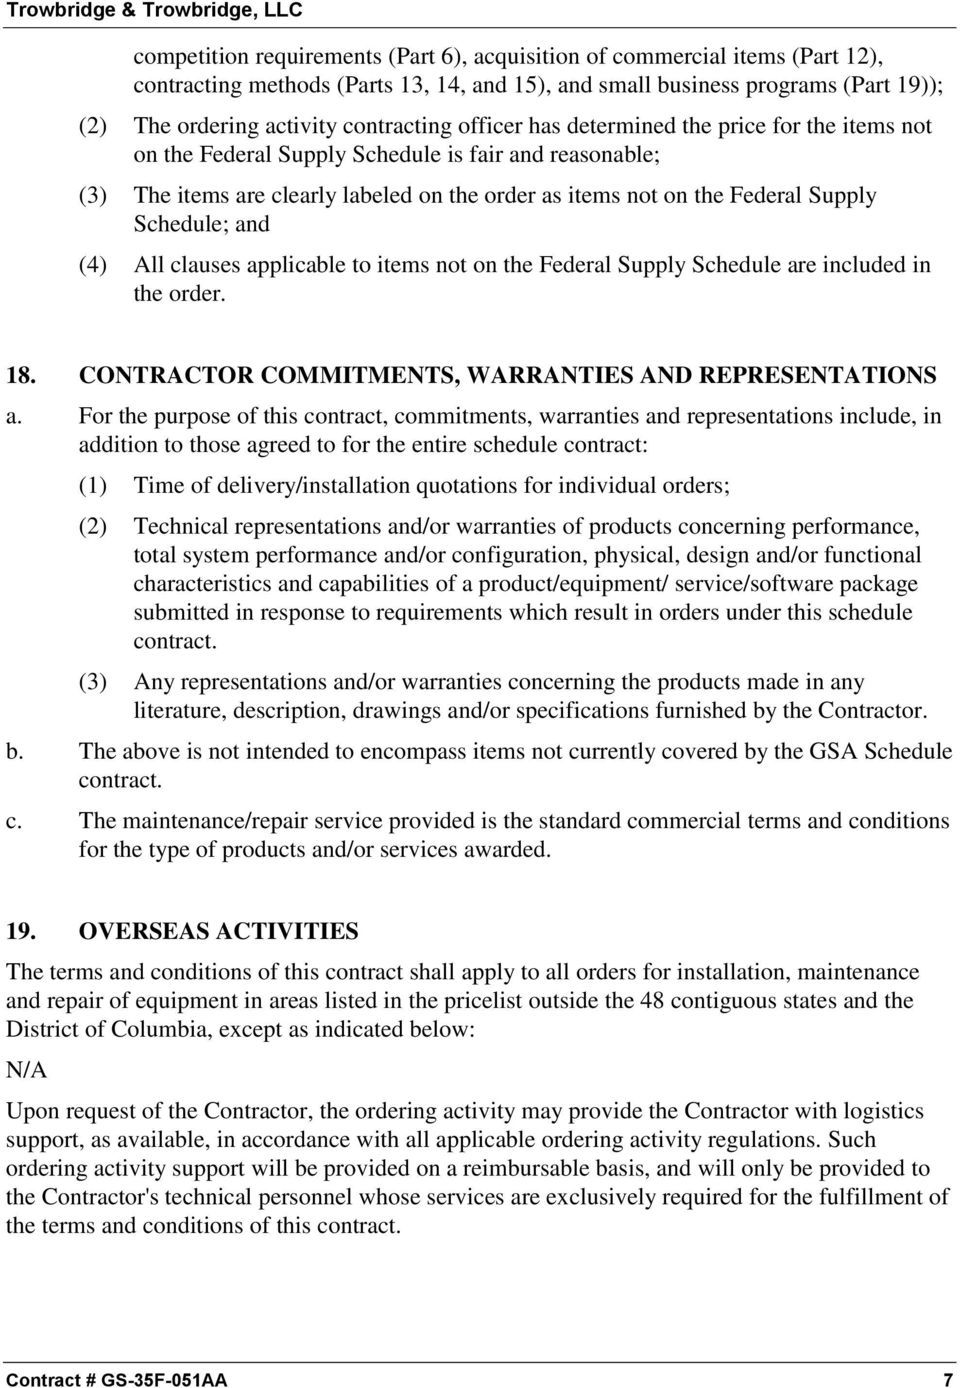 and (4) All clauses applicable to items not on the Federal Supply Schedule are included in the order. 18. CONTRACTOR COMMITMENTS, WARRANTIES AND REPRESENTATIONS a.